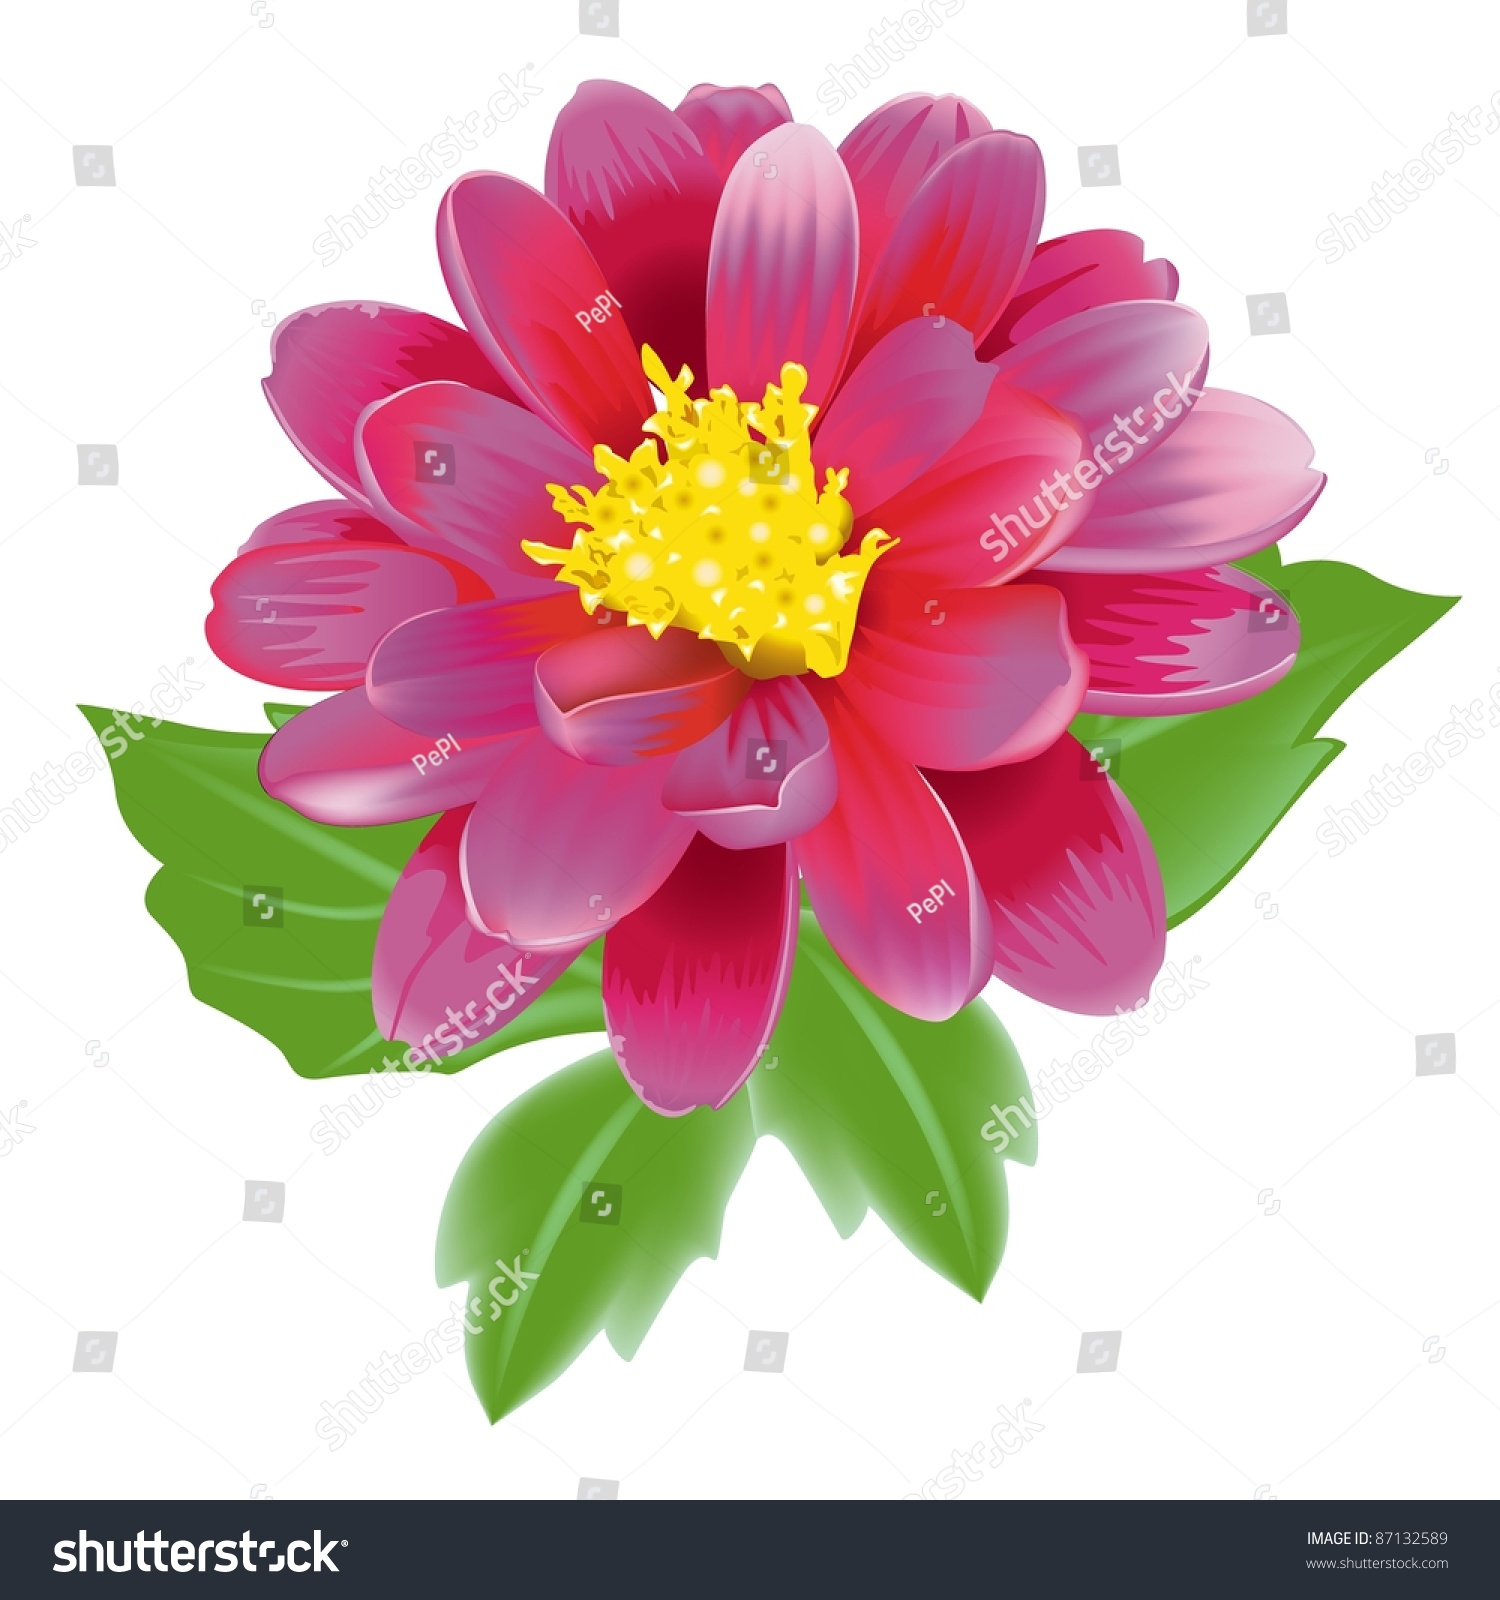 Amazing beautiful exotic flower pictures inspiration images for unusual beautiful exotic flower ideas wedding and flowers izmirmasajfo Images